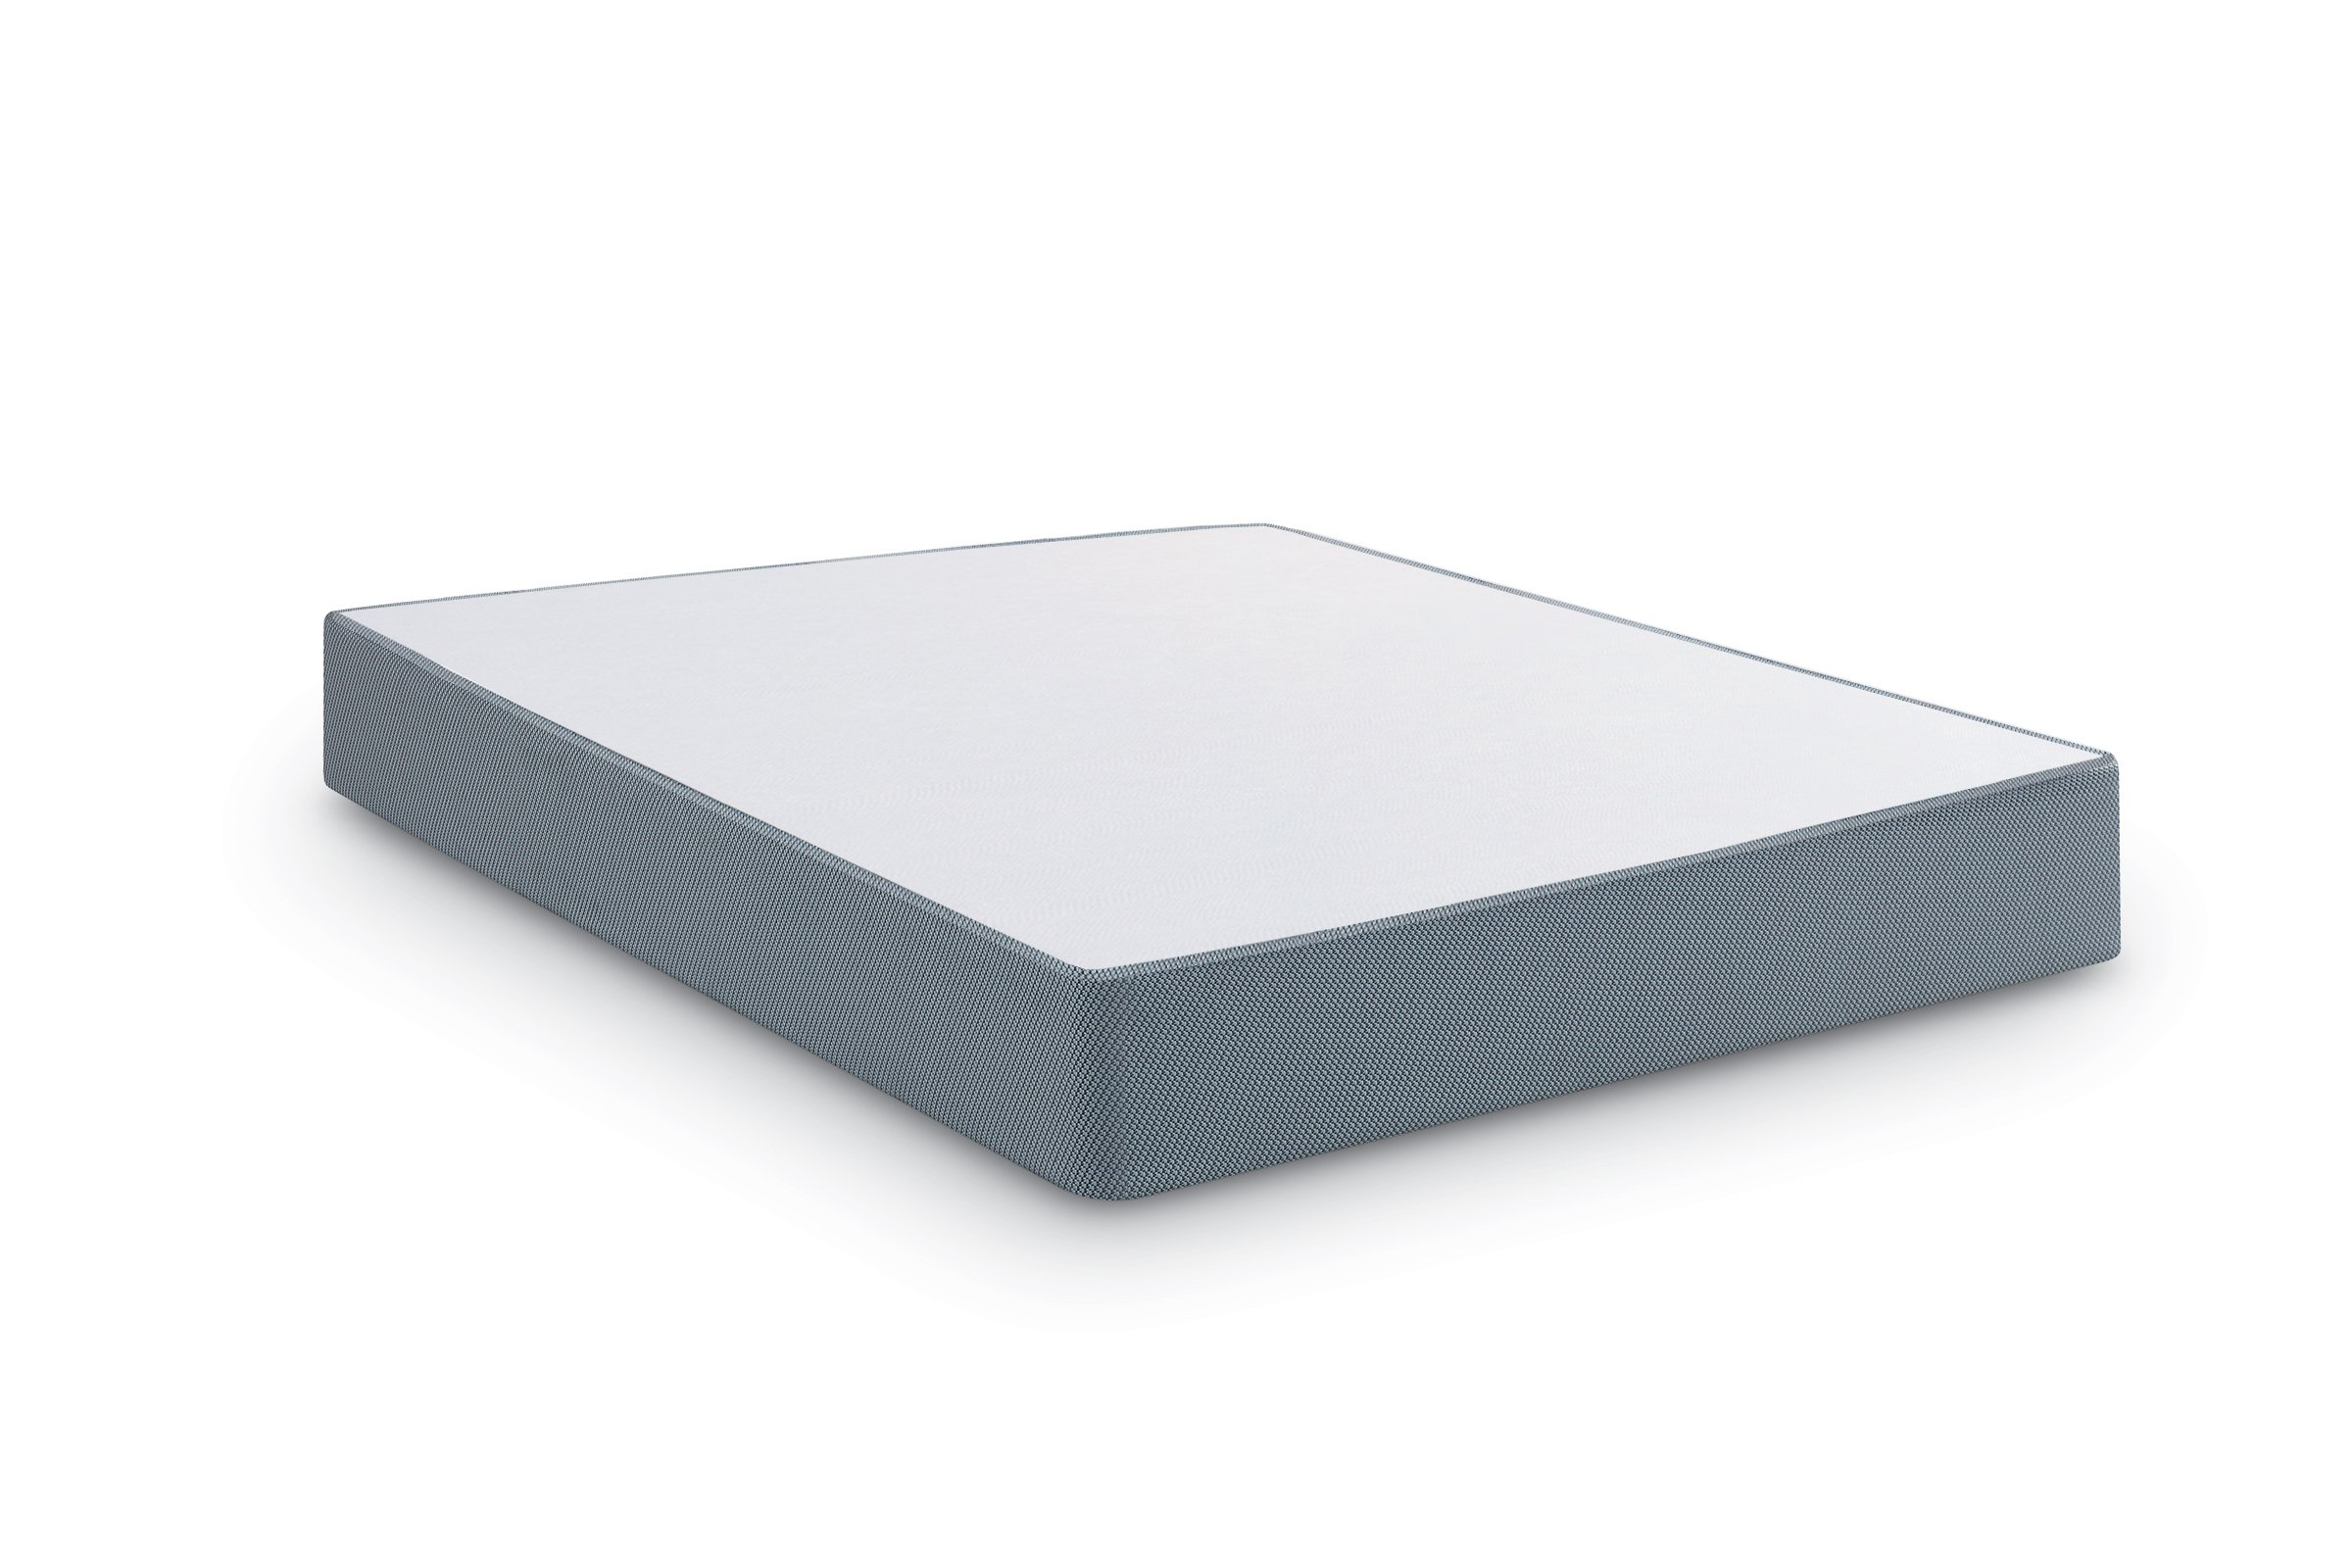 Scott Living By Restonic Low Profile Universal Foundation Bed Mattress  Hybrid, Twin, Silver